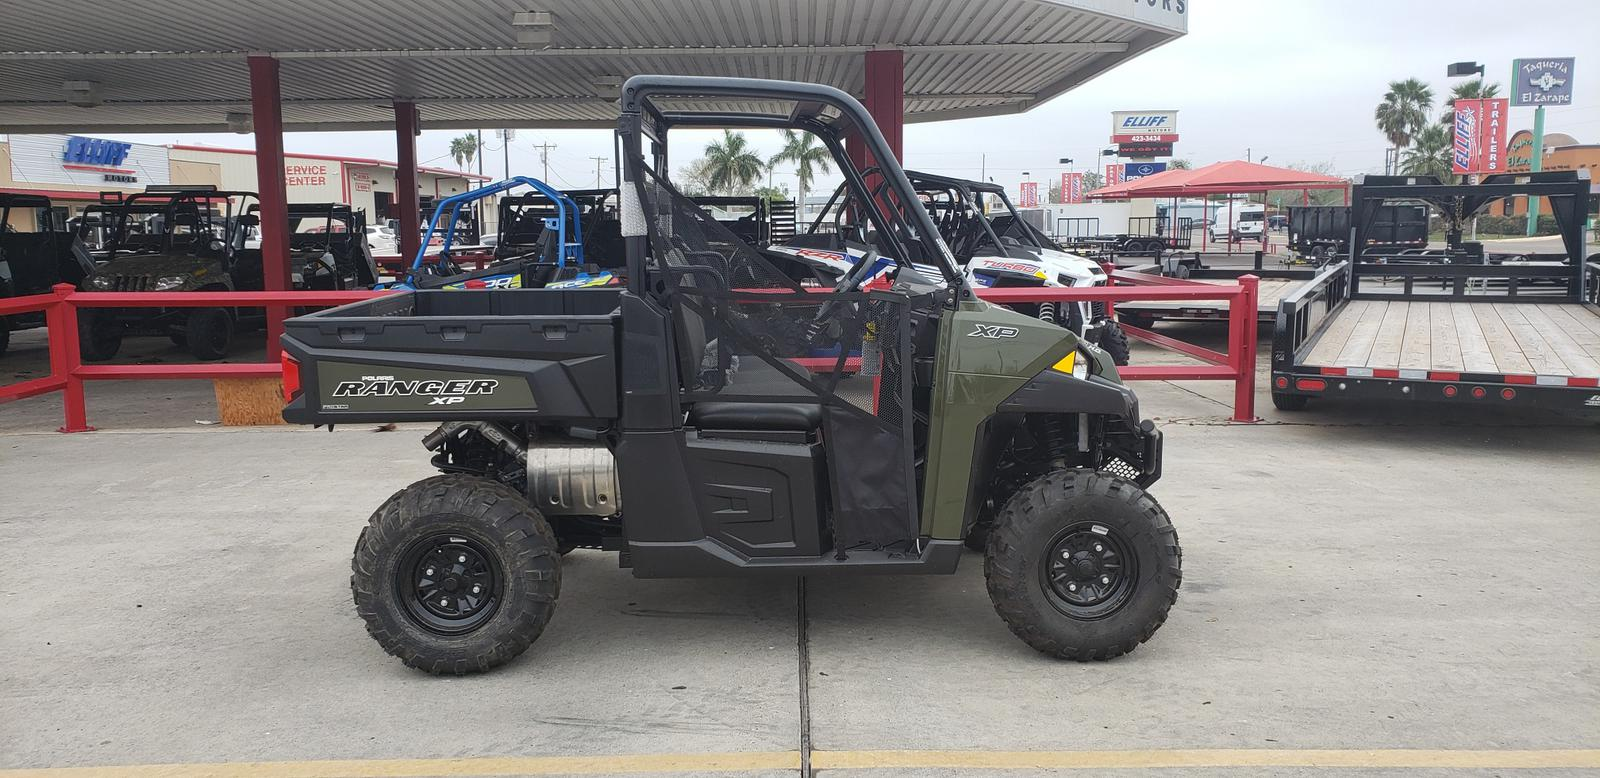 Polaris Ranger Xp 900 >> 2019 Polaris Industries Ranger Xp 900 Sage Green